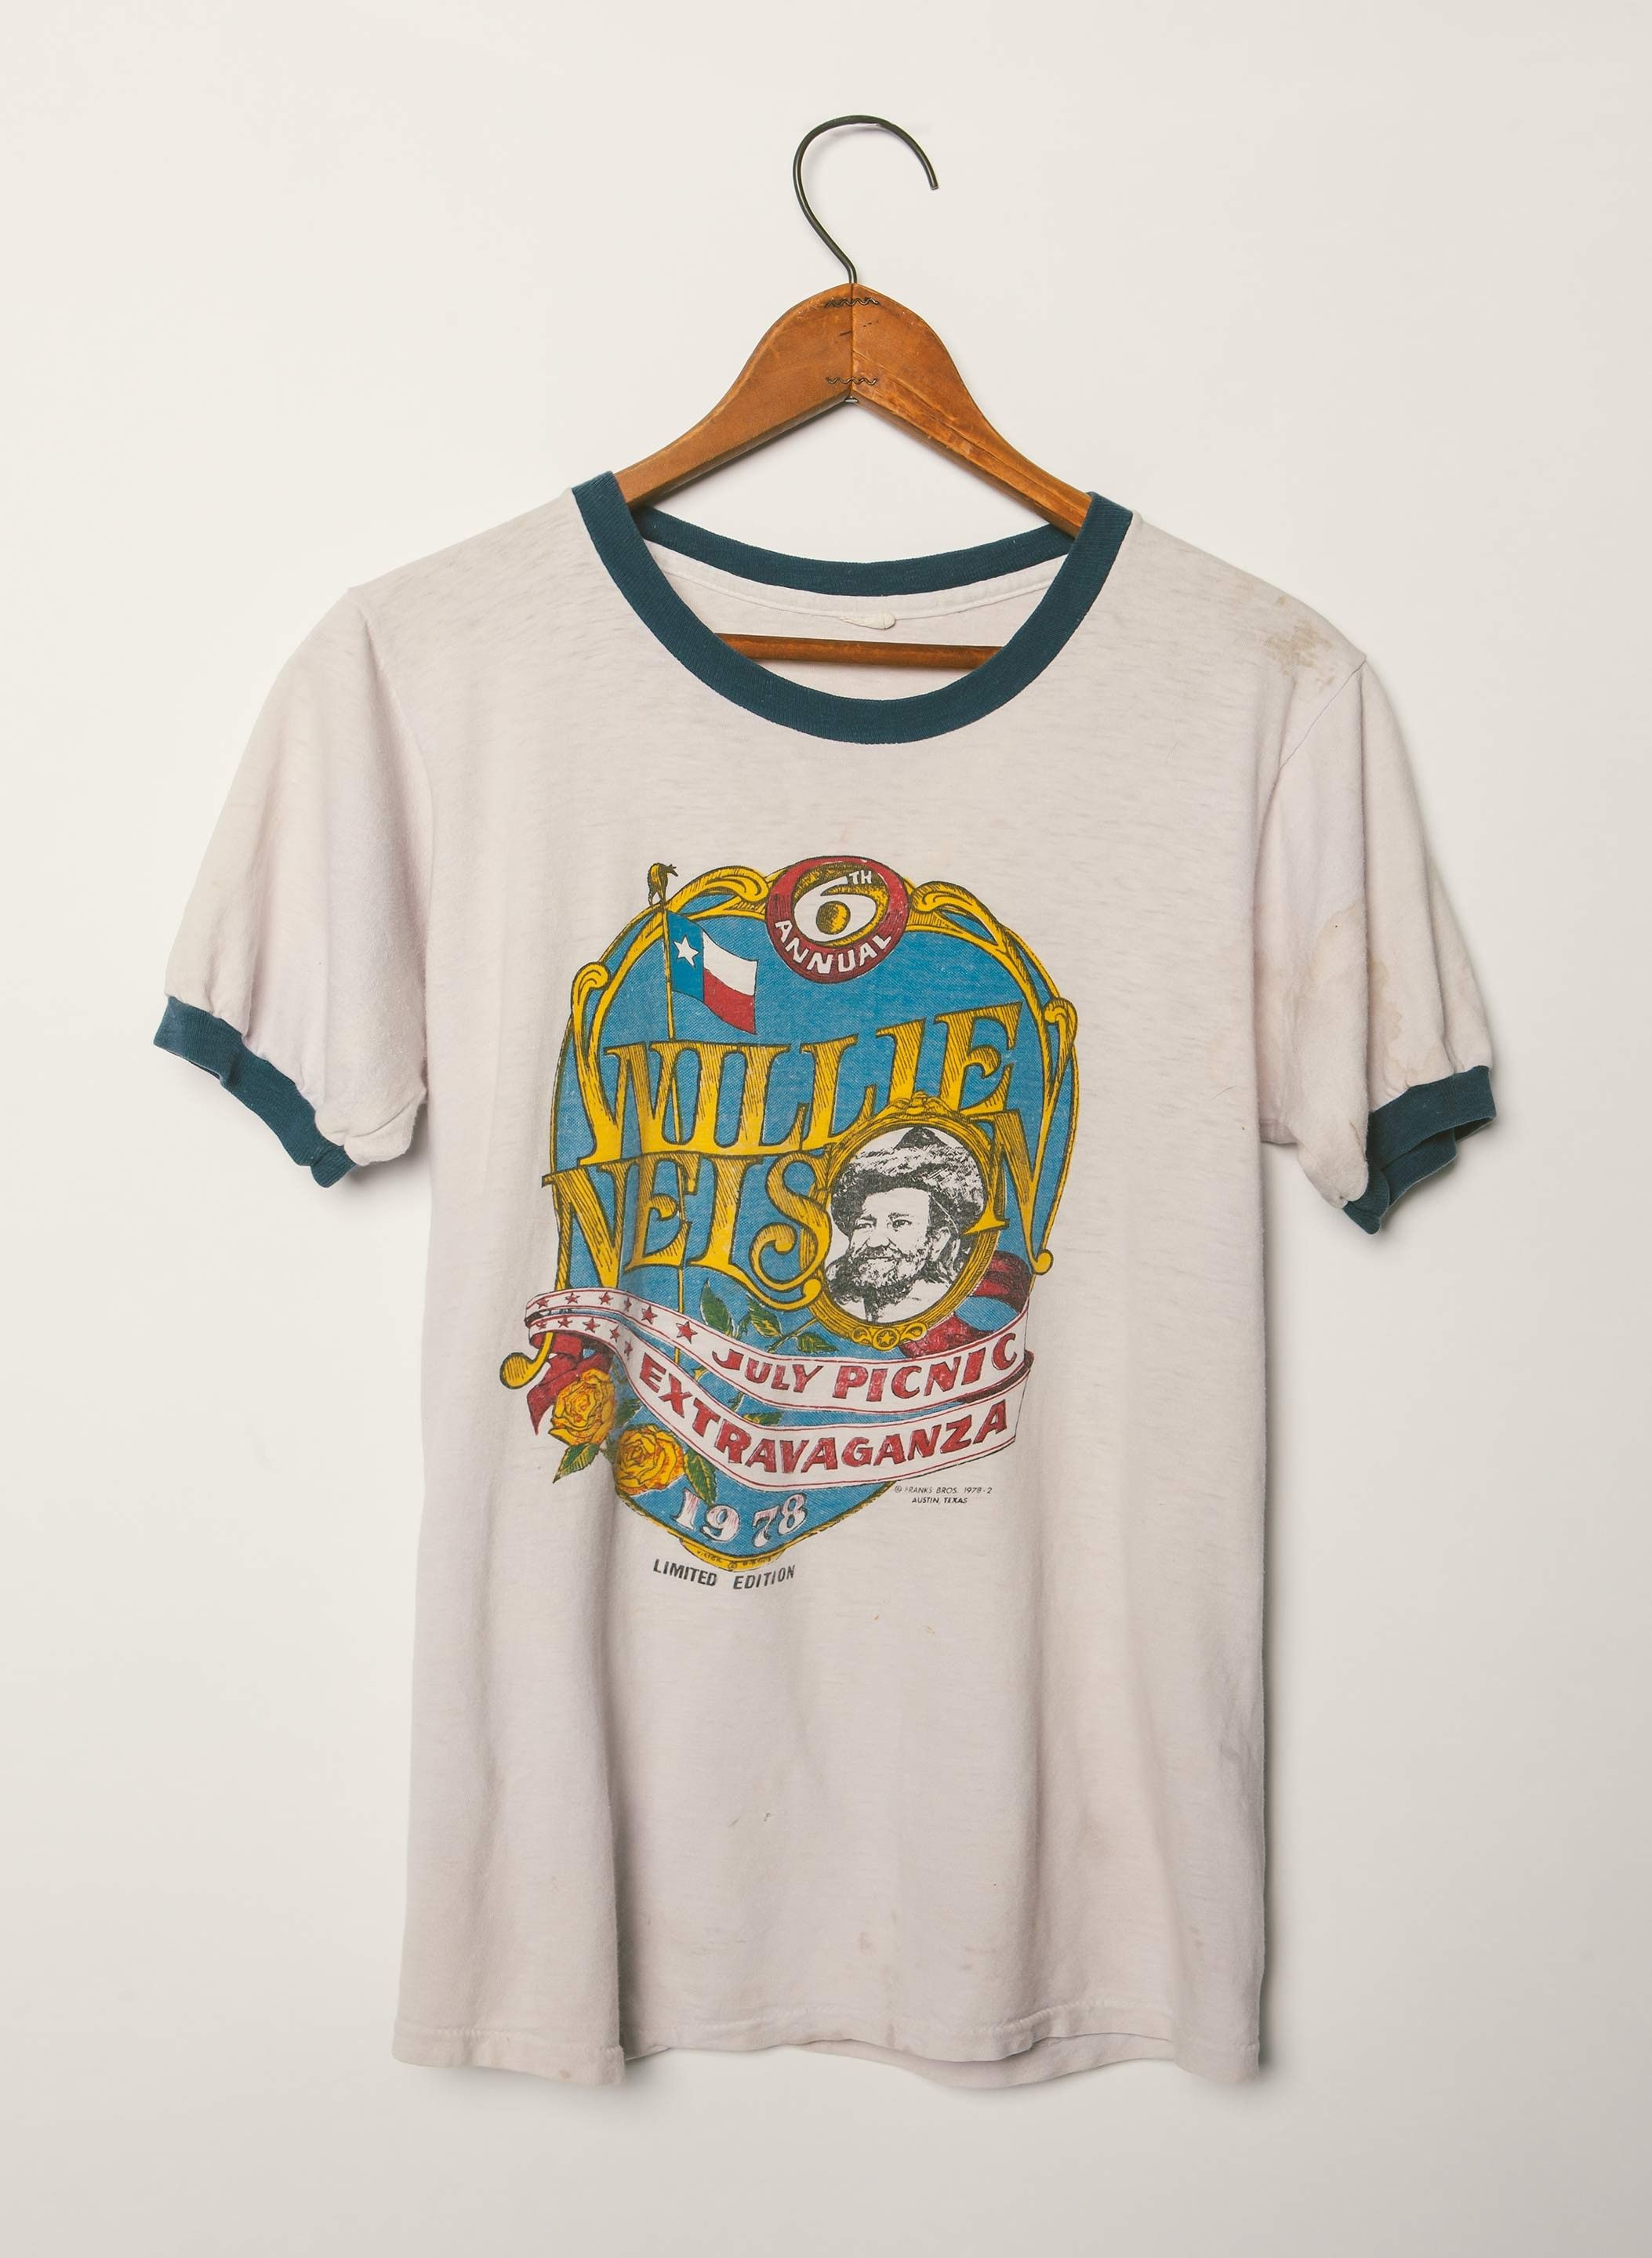 tee shirt Willie nelson vintage